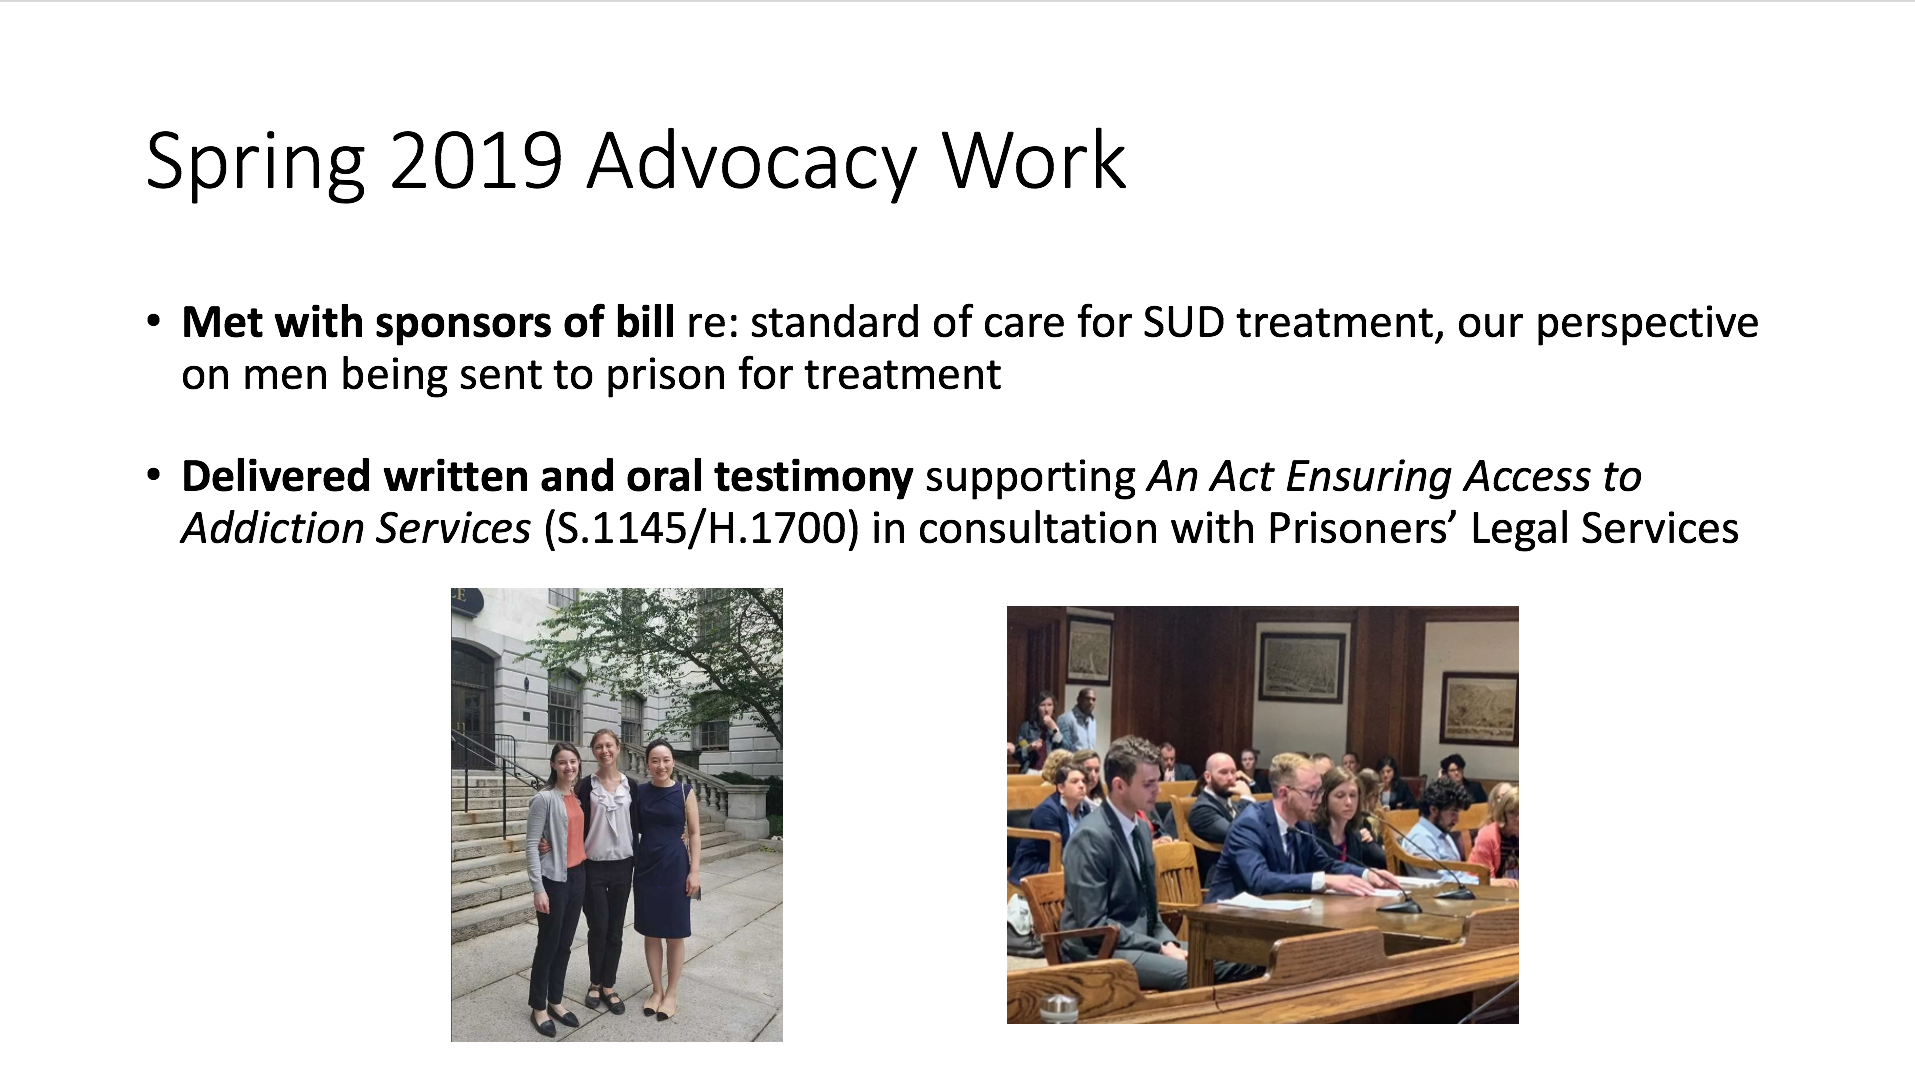 2019 Advocacy projects